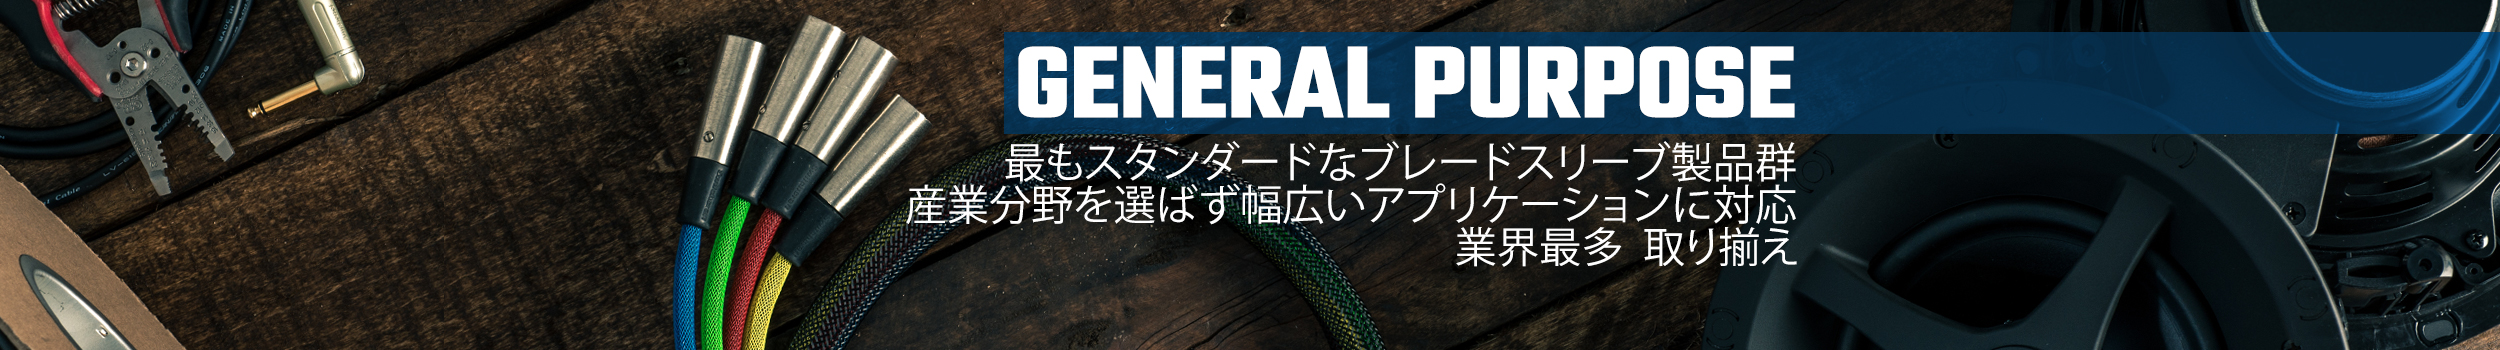 General purpose banner jp.ja